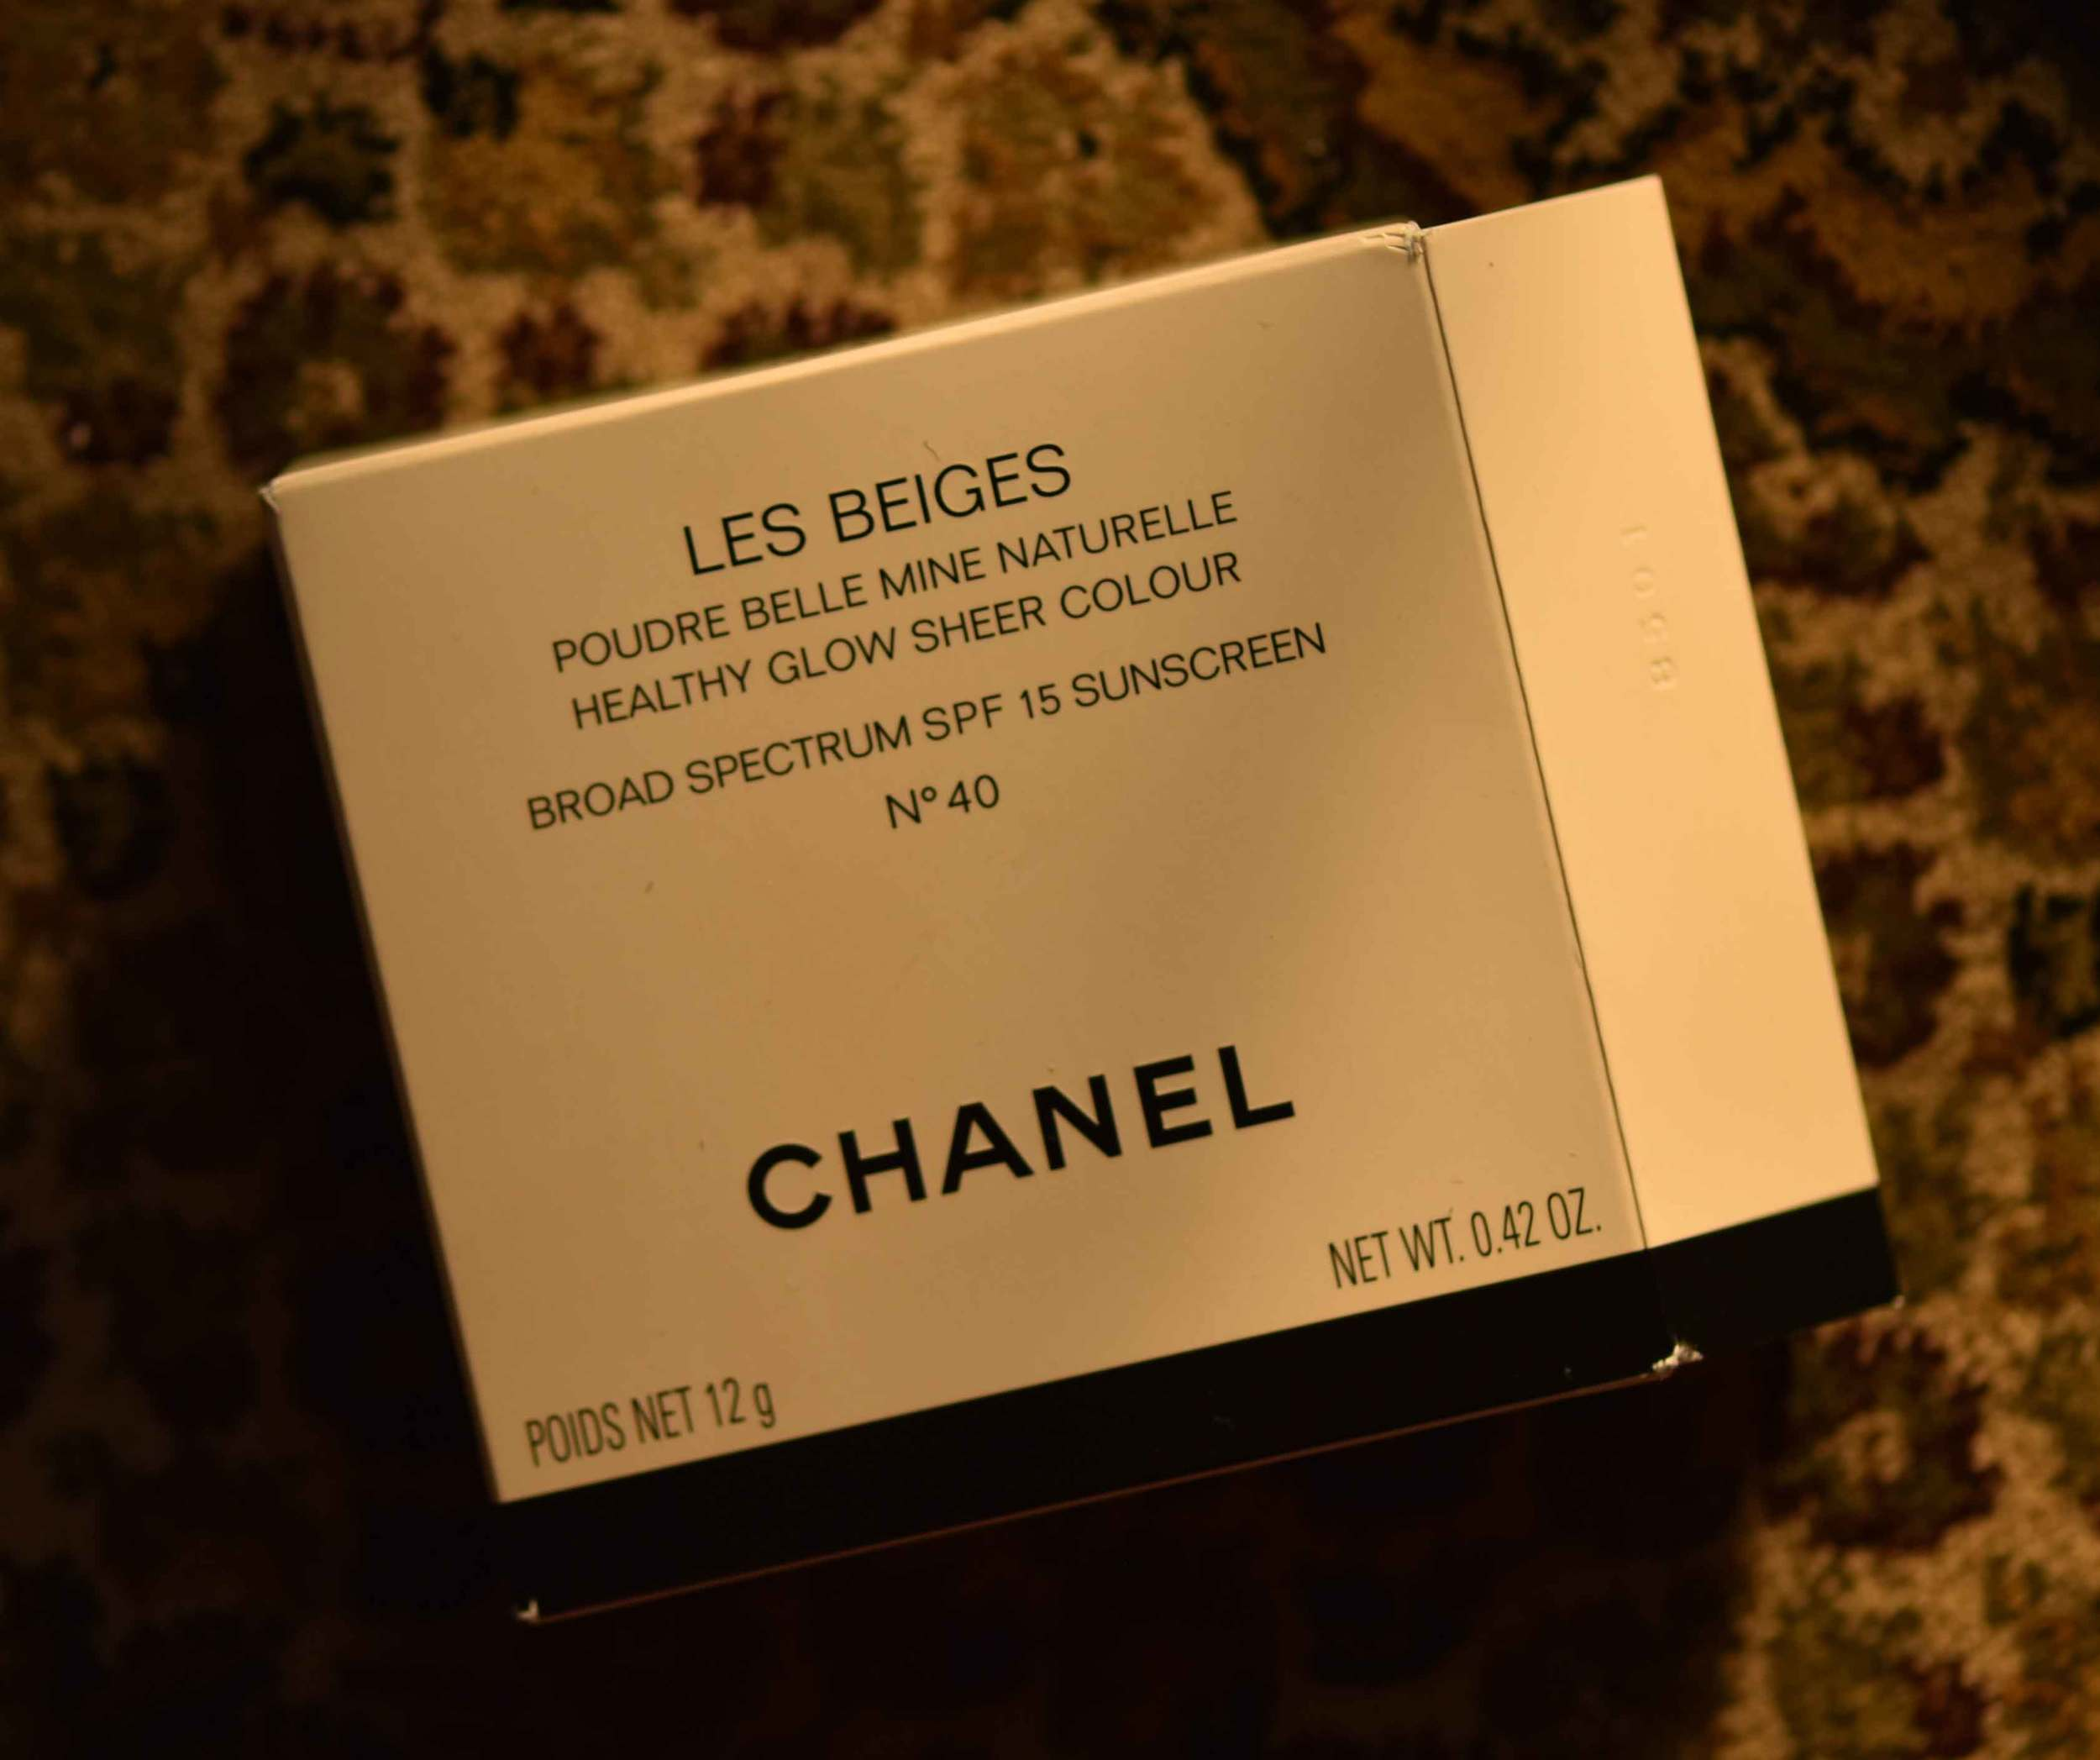 The Chanel Les Beiges Healthy Glow Sheer Color. Image©gunjanvirk